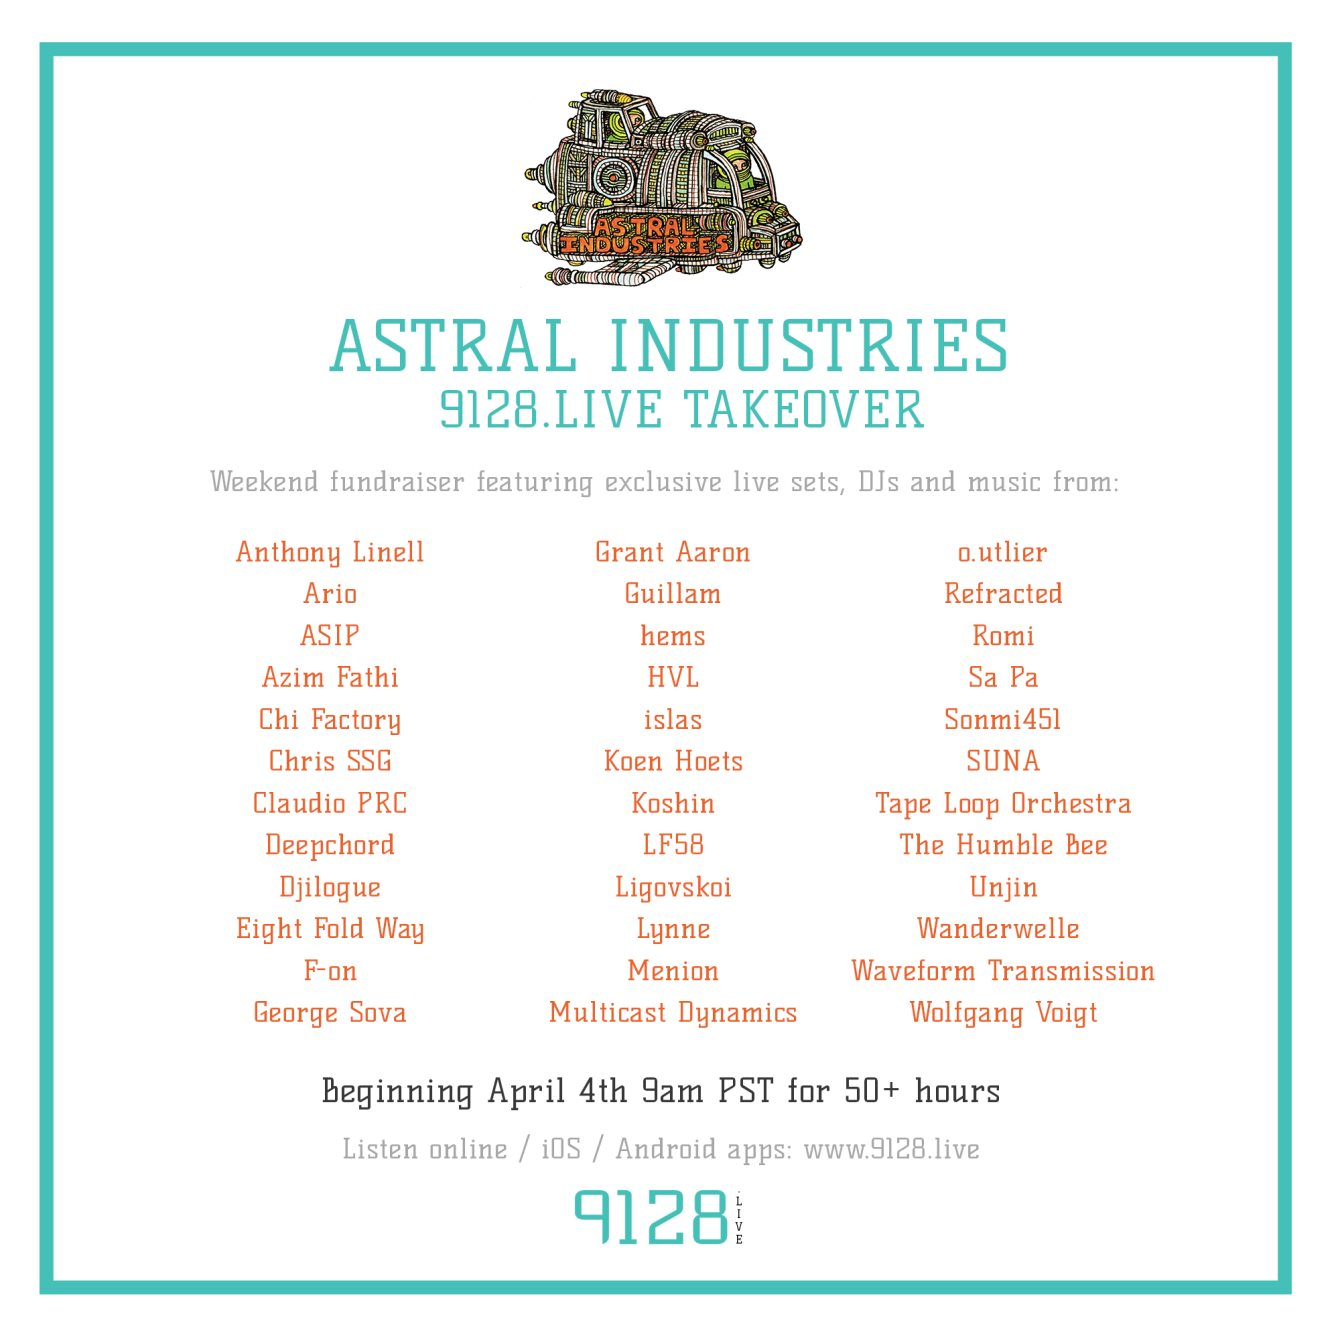 Astral Industries 9128.Live Weekend Takeover - Flyer front